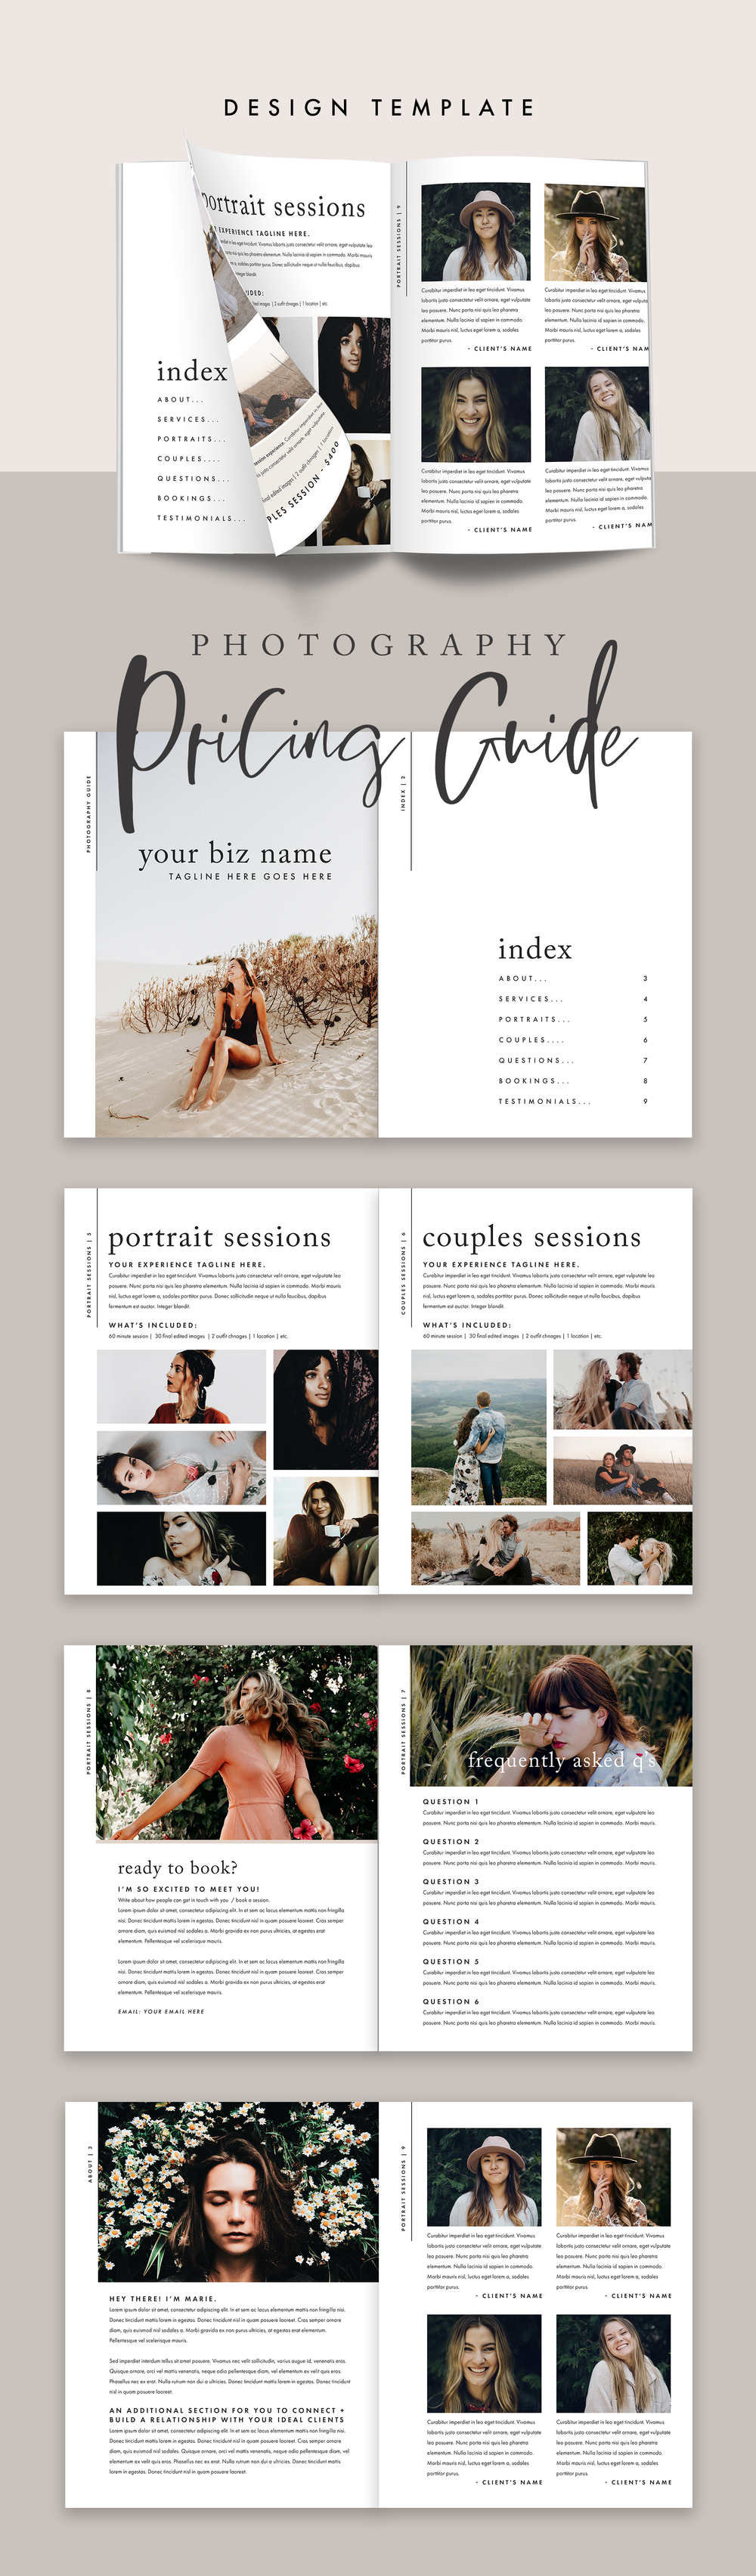 Photography-Pricing-Guide---Caslon.png